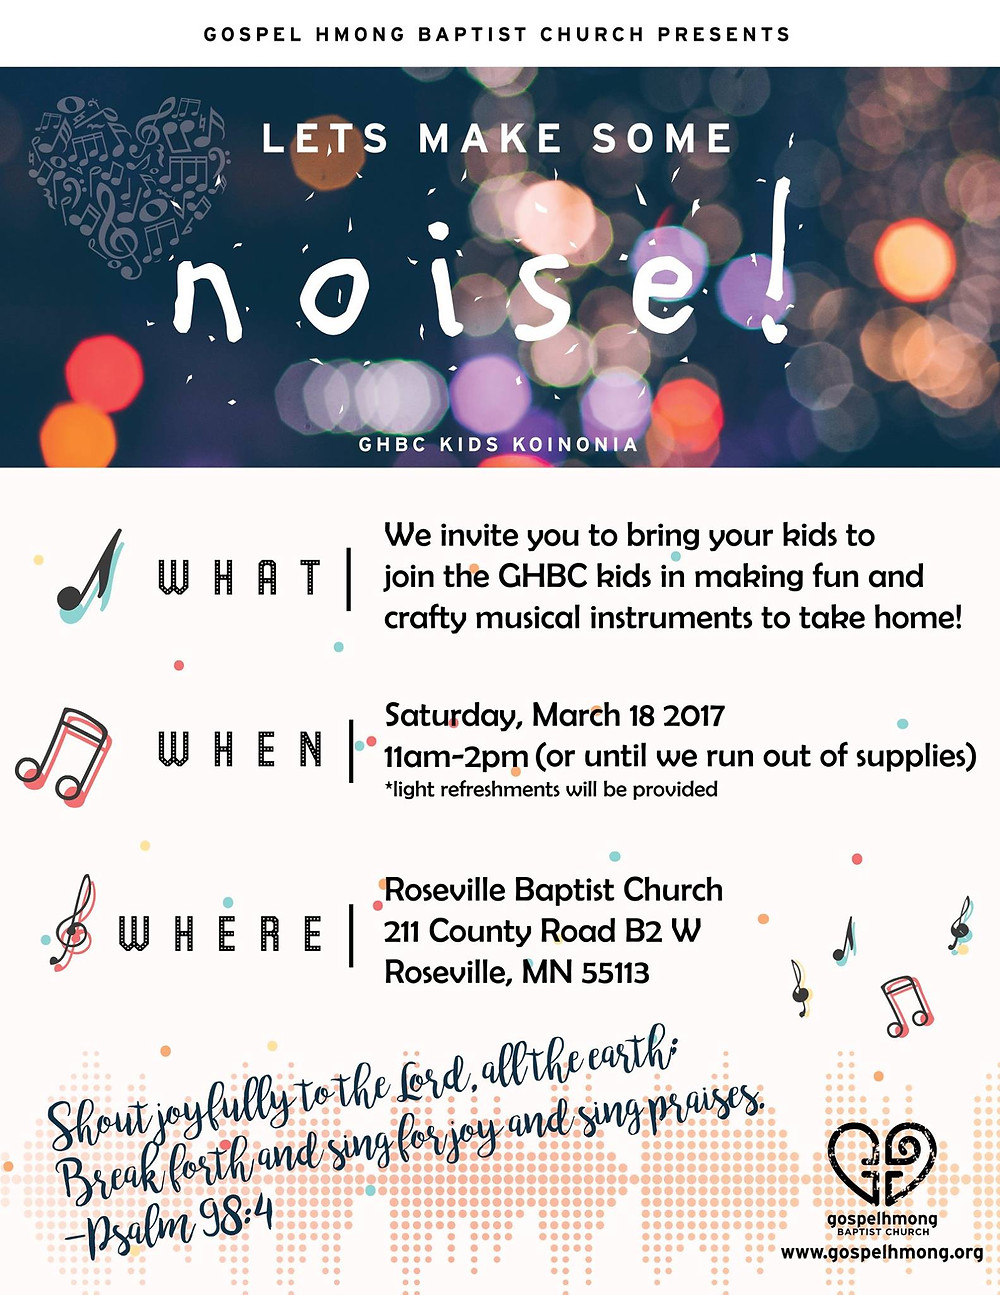 Get ready to make some noise!!! Please come join us for our first Kids Koinonia this year on Saturday, March 18 from 11-2pm. Our children's ministry will be making fun and crafty instruments. We invite you to bring your family and kids to join us and make your own instruments to praise the Lord! Let us know if you have any questions.